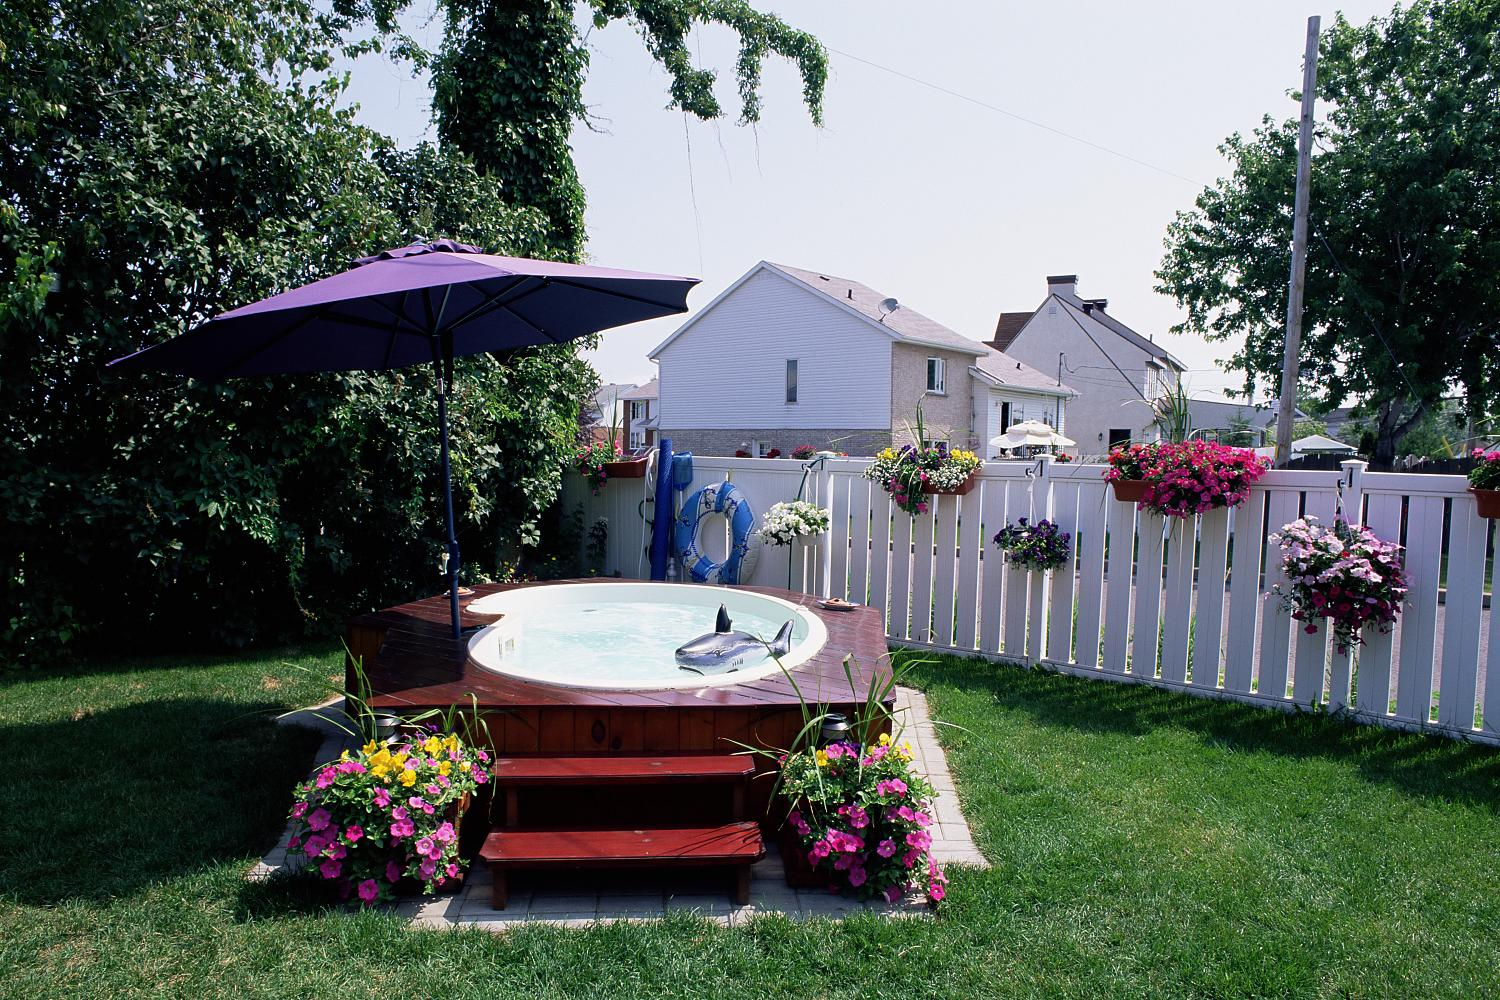 A hot tub in a back yard with umbrella and stairs